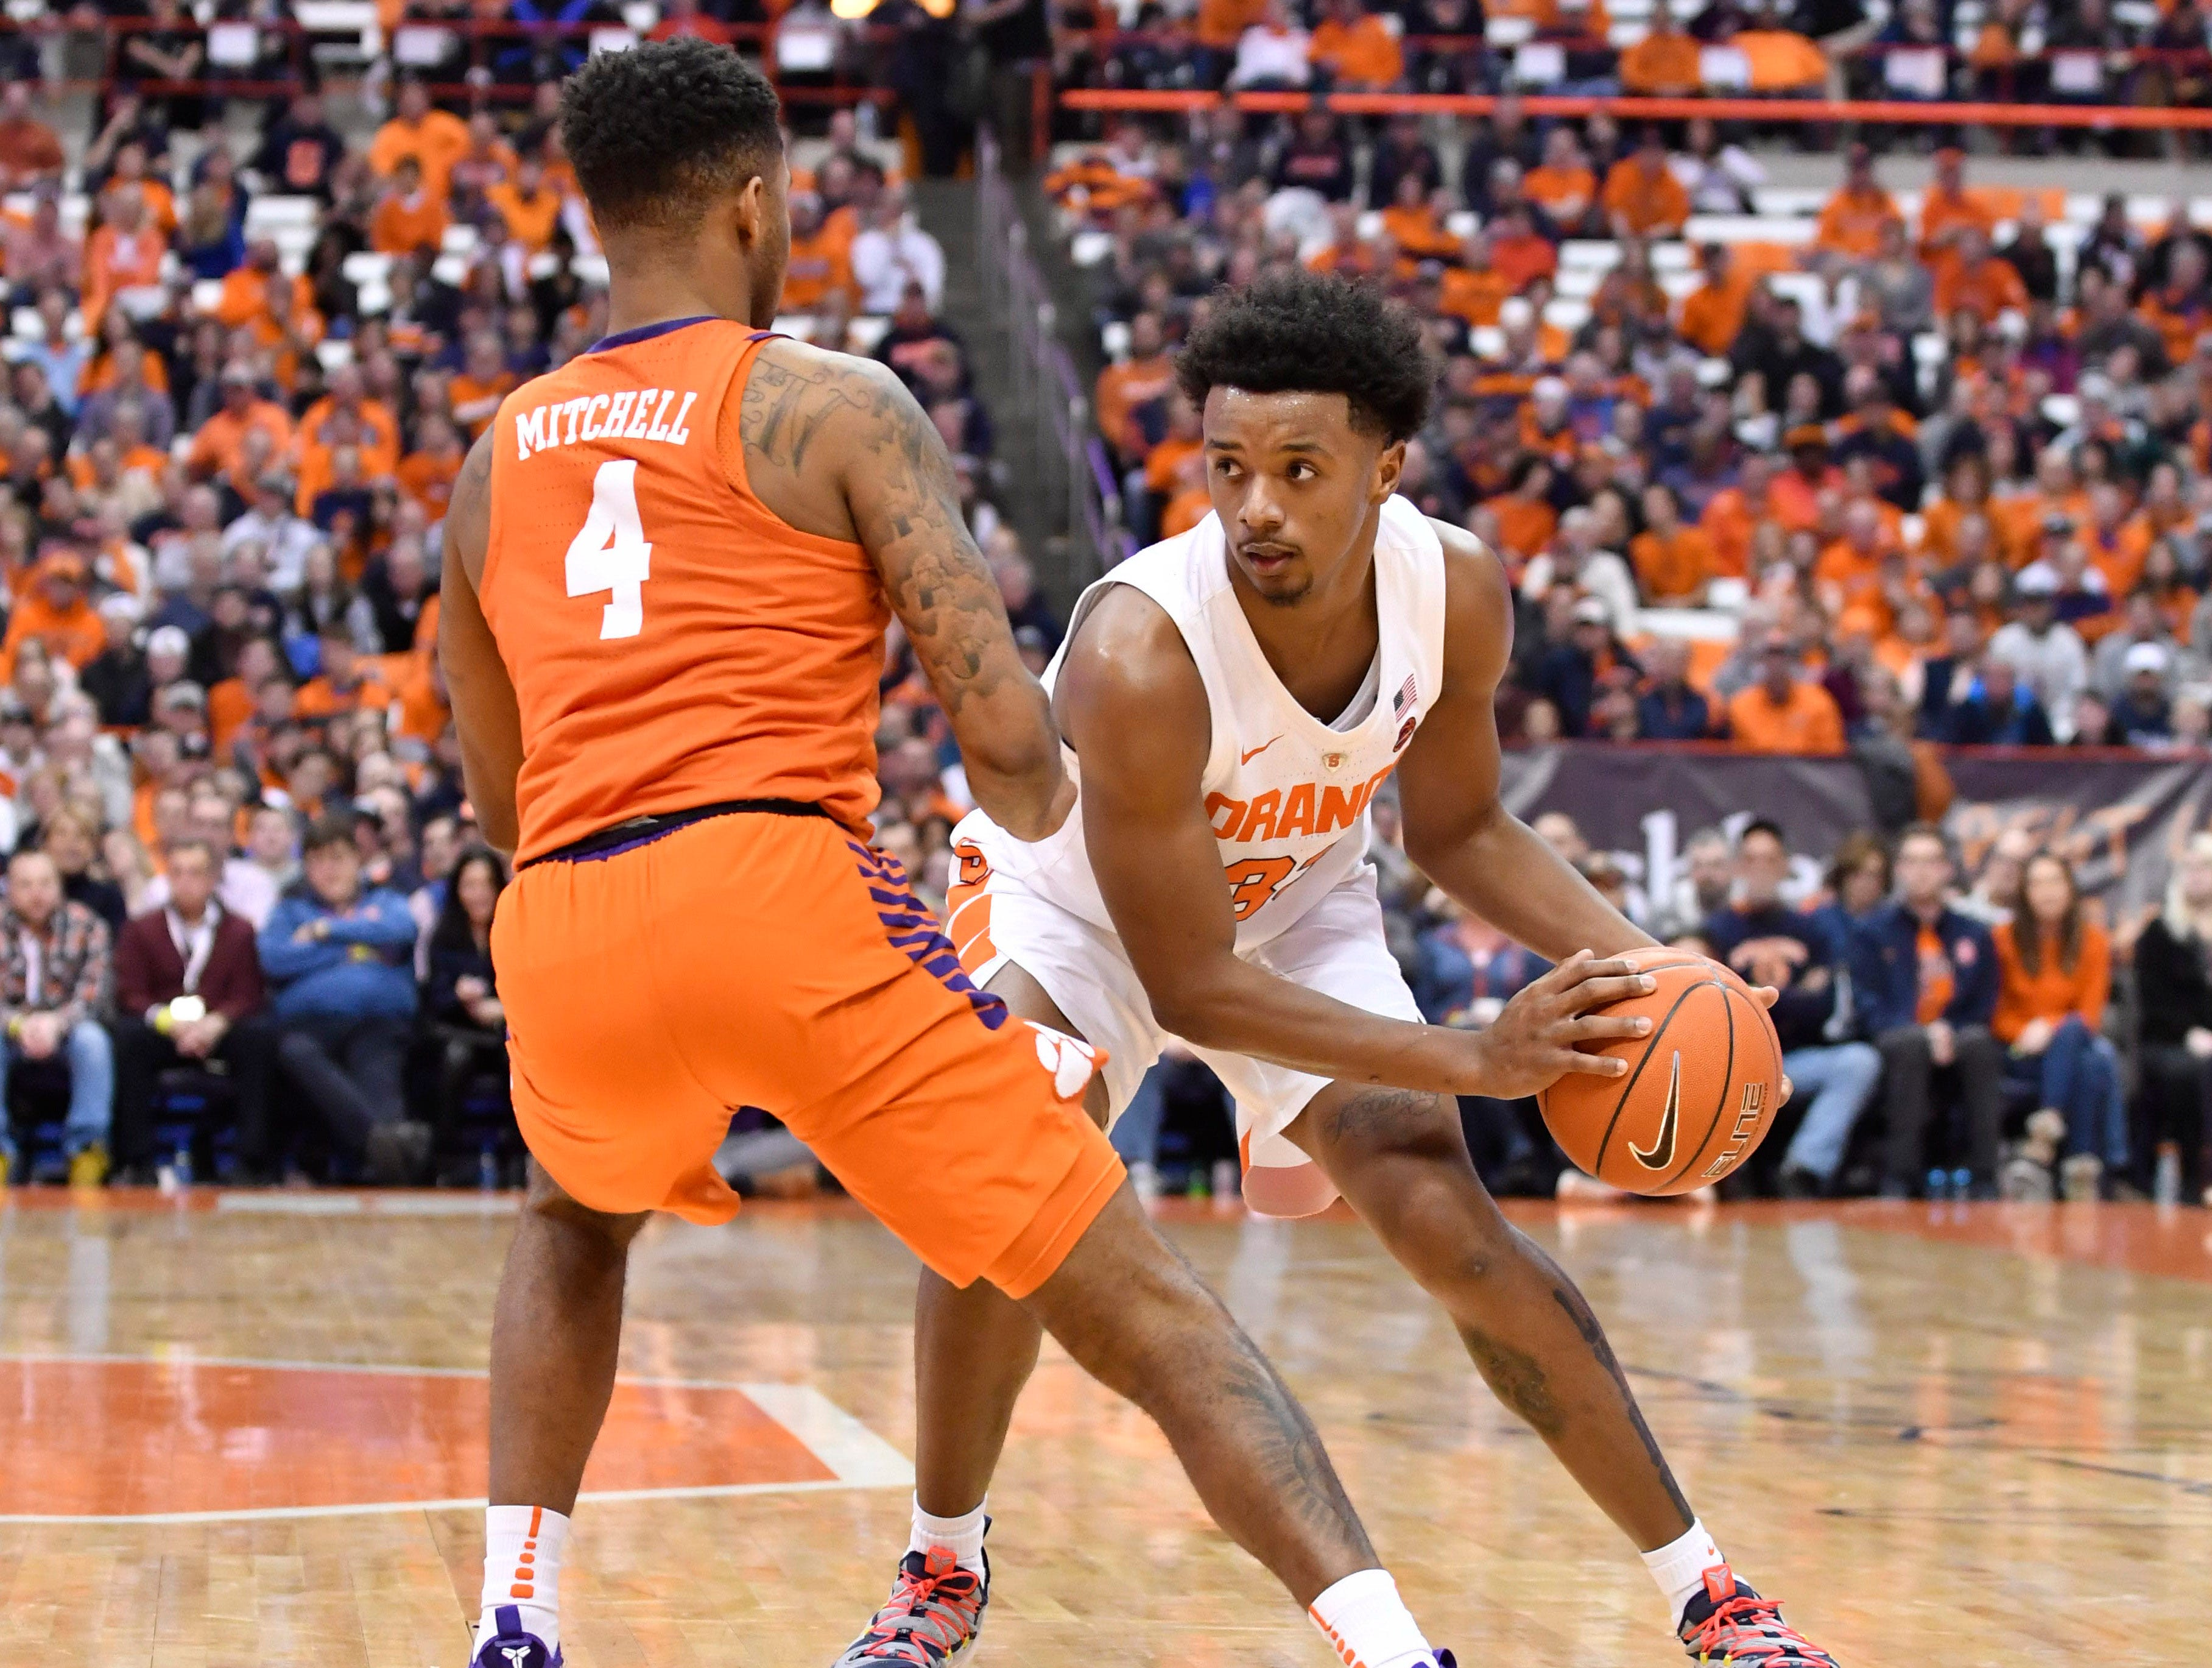 Jan 9, 2019; Syracuse, NY, USA; Syracuse Orange forward Elijah Hughes (33) sets up Clemson Tigers guard Shelton Mitchell (4) on the dribble during the second half at the Carrier Dome.